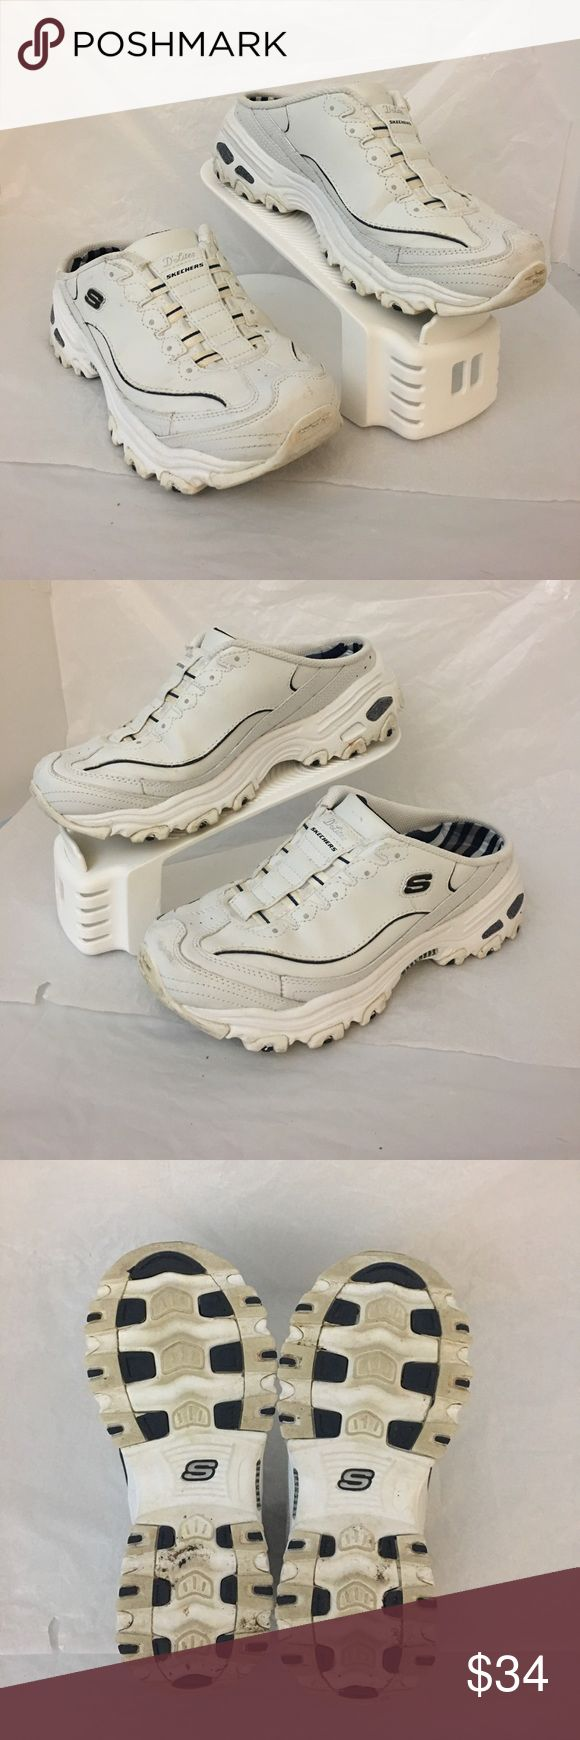 Skechers D'Lites Sport shoes Pre owned in excellent condition Skechers D'Lite sport mules. The front of each shoe does have minor scuff marks. The inside and soles and the rest of the shoes are perfect. Size: 7   Smoke and pet free house Skechers Shoes Sneakers